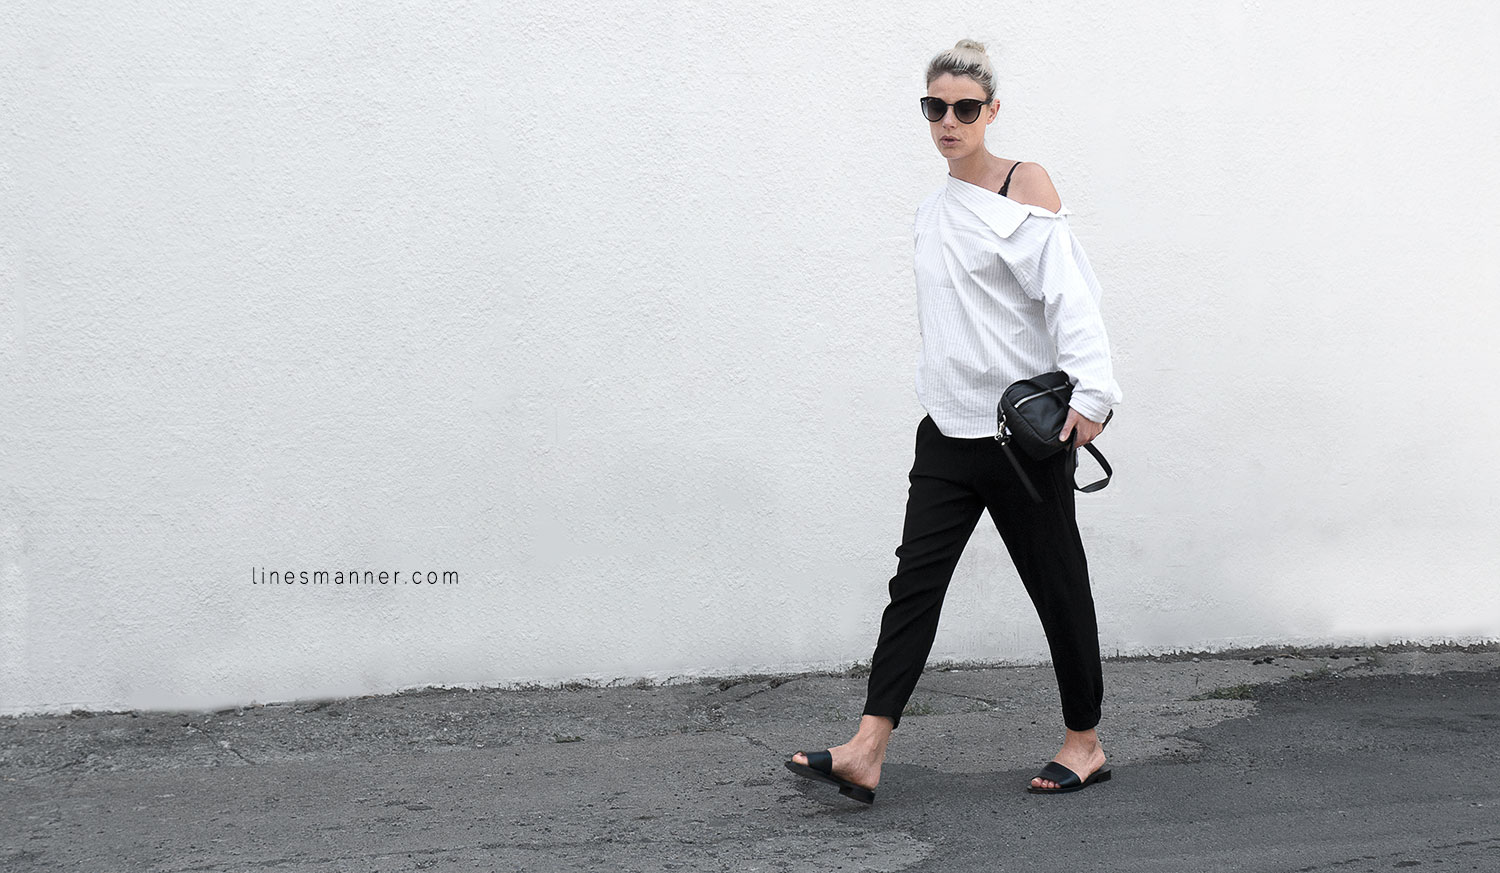 Lines-Manner-Simplicity-Off_shoulder-Monochrome-Noway_Monday-Details-Edgy6Backward-Sleek Statement_piece-Pinstripe-Business-Shirt-Minimal-Essentials-Outfit-Fashion-Minimal_fashion-Slides-Everlane-8